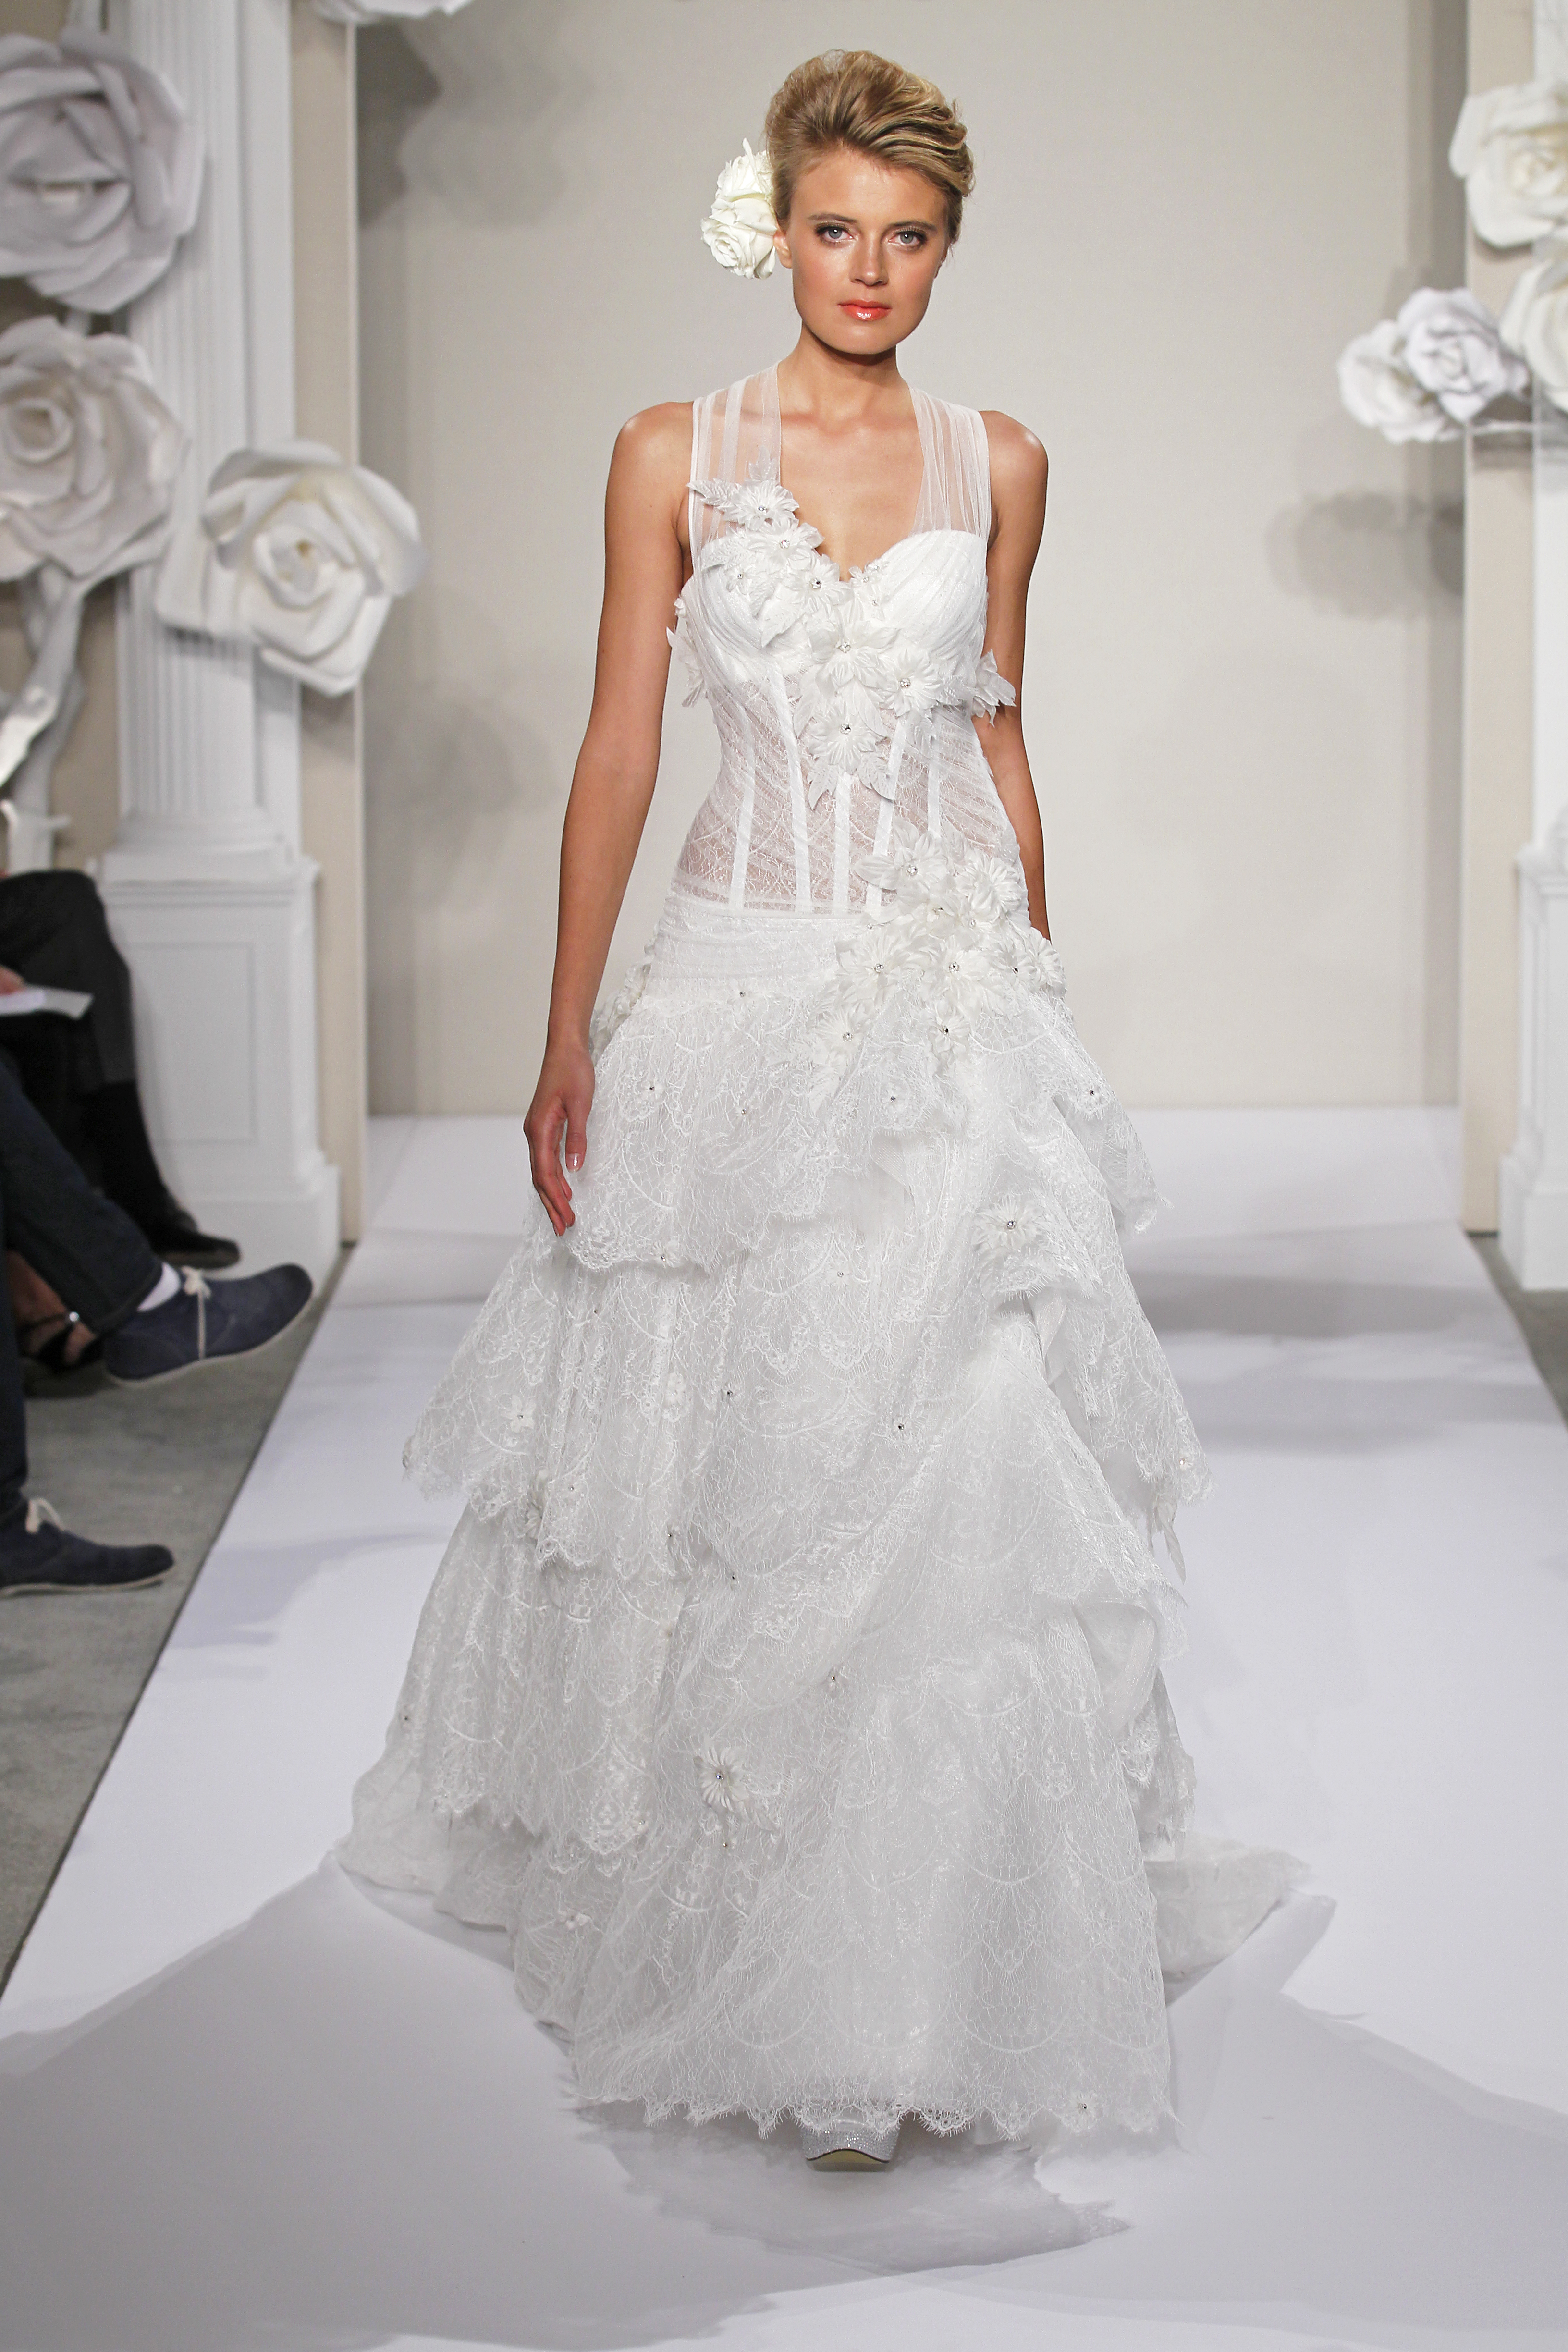 Wedding Dresses, Sweetheart Wedding Dresses, Illusion Neckline Wedding Dresses, A-line Wedding Dresses, Ruffled Wedding Dresses, Lace Wedding Dresses, Fashion, white, ivory, Flowers, Shabby Chic, Lace, Sweetheart, A-line, Floor, Formal, Natural, Ruffles, Tiers, Illusion, Sleeveless, Pnina tornai, Flower Wedding Dresses, Formal Wedding Dresses, Floor Wedding Dresses, Shabby Chic Wedding Dresses, Tiered Wedding Dresses